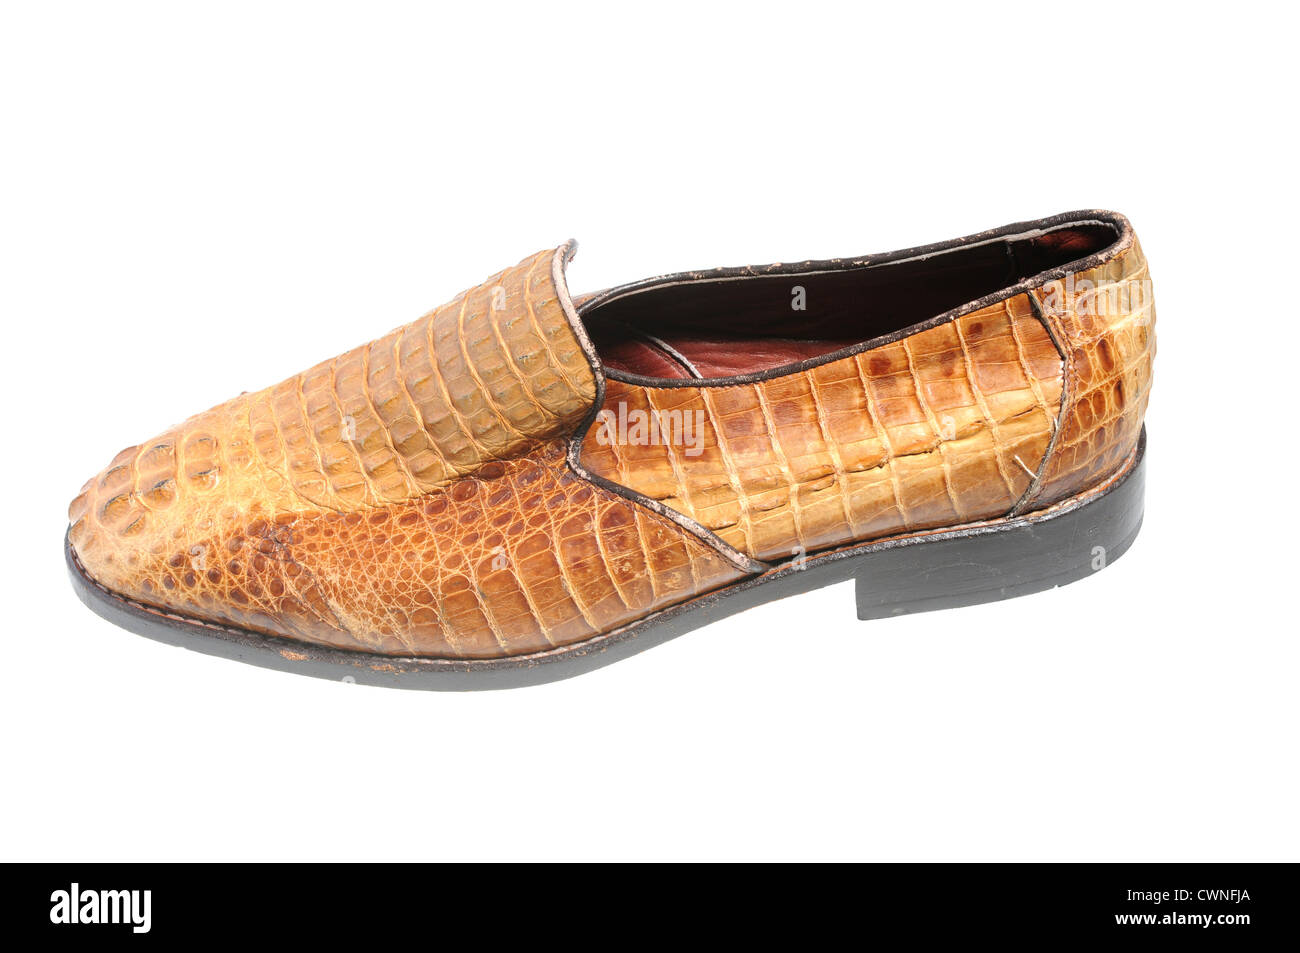 illegal endangered species product from CITES list - snake leather shoe isolated on white - Stock Image